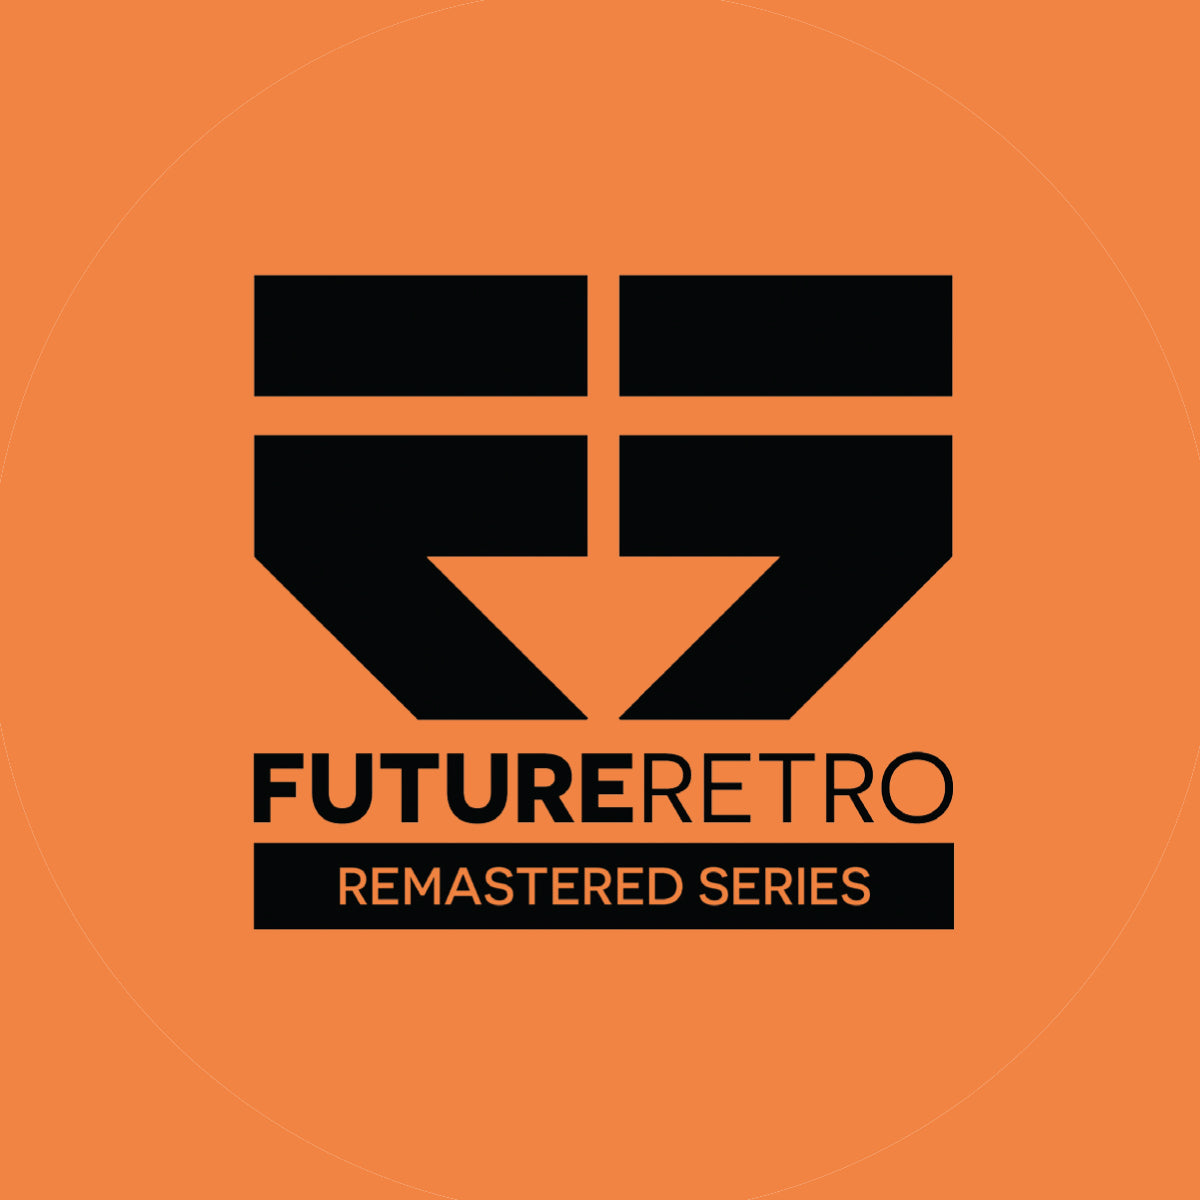 "RETRO014 - Future Retro Remastered Series - BCee / Netsky / Lenzman etc. 12"" Limited Edition Orange Vinyl"